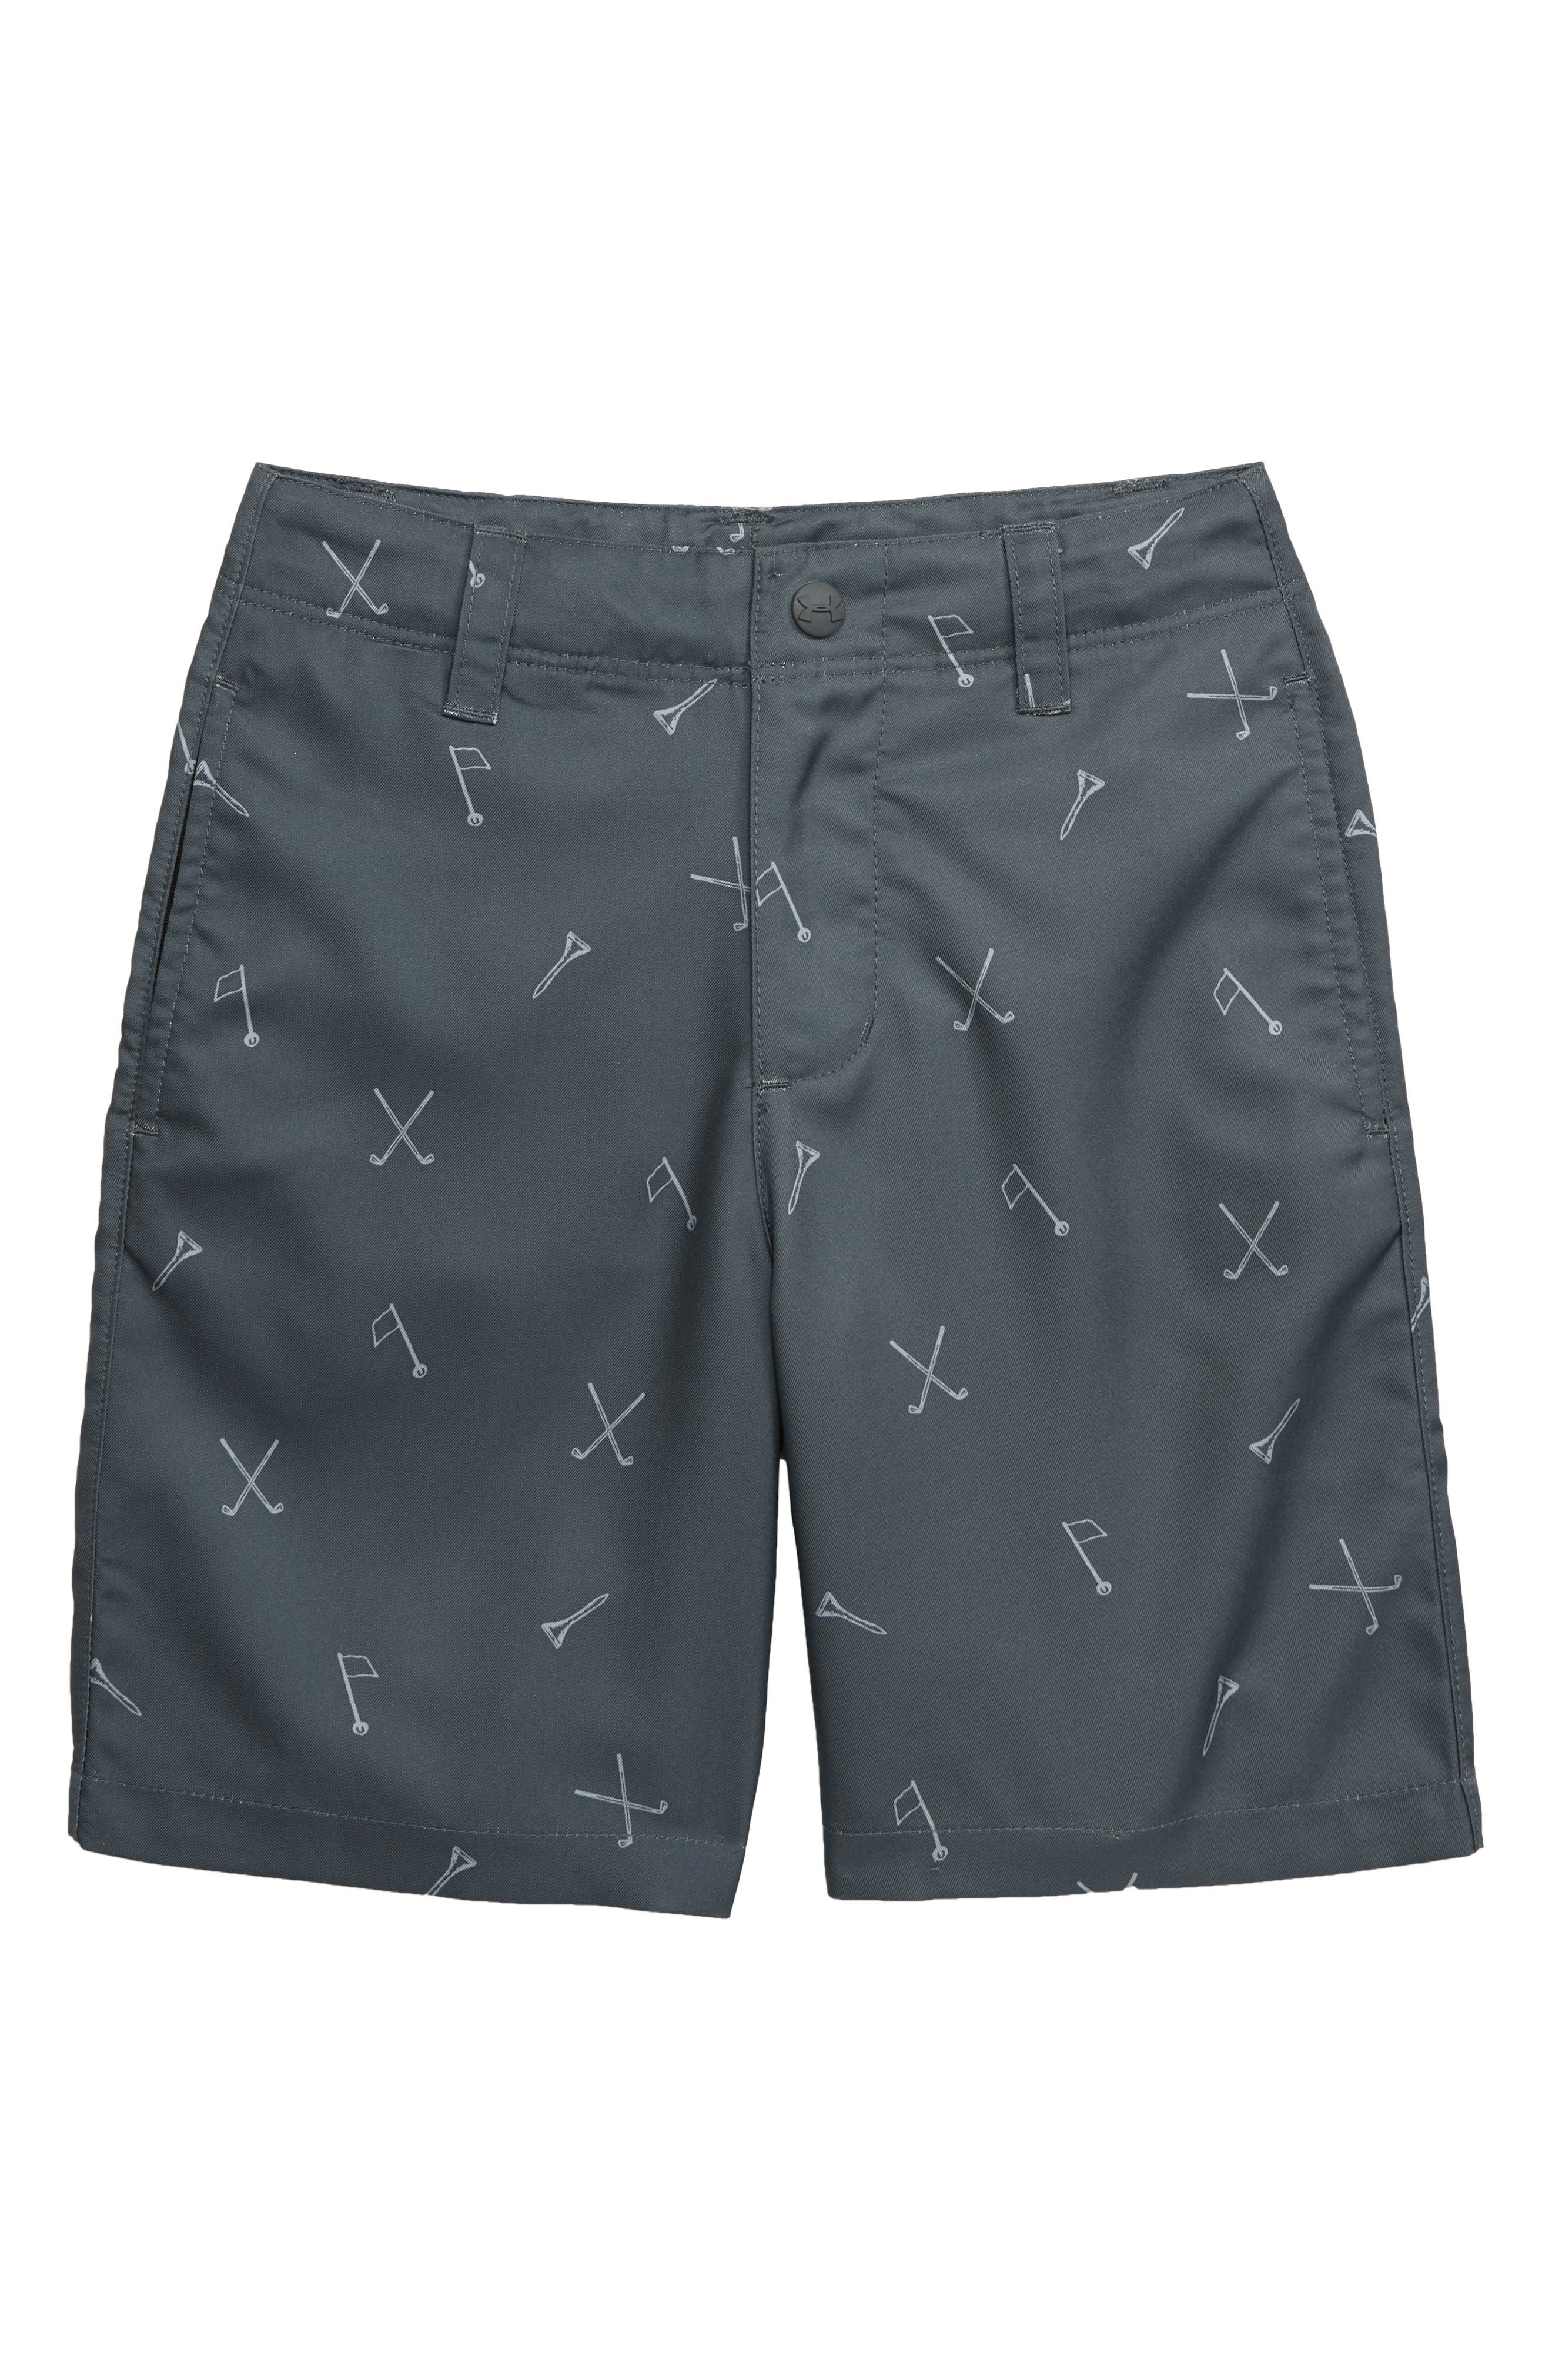 UNDER ARMOUR, Golf Icons HeatGear<sup>®</sup> Golf Shorts, Main thumbnail 1, color, 022